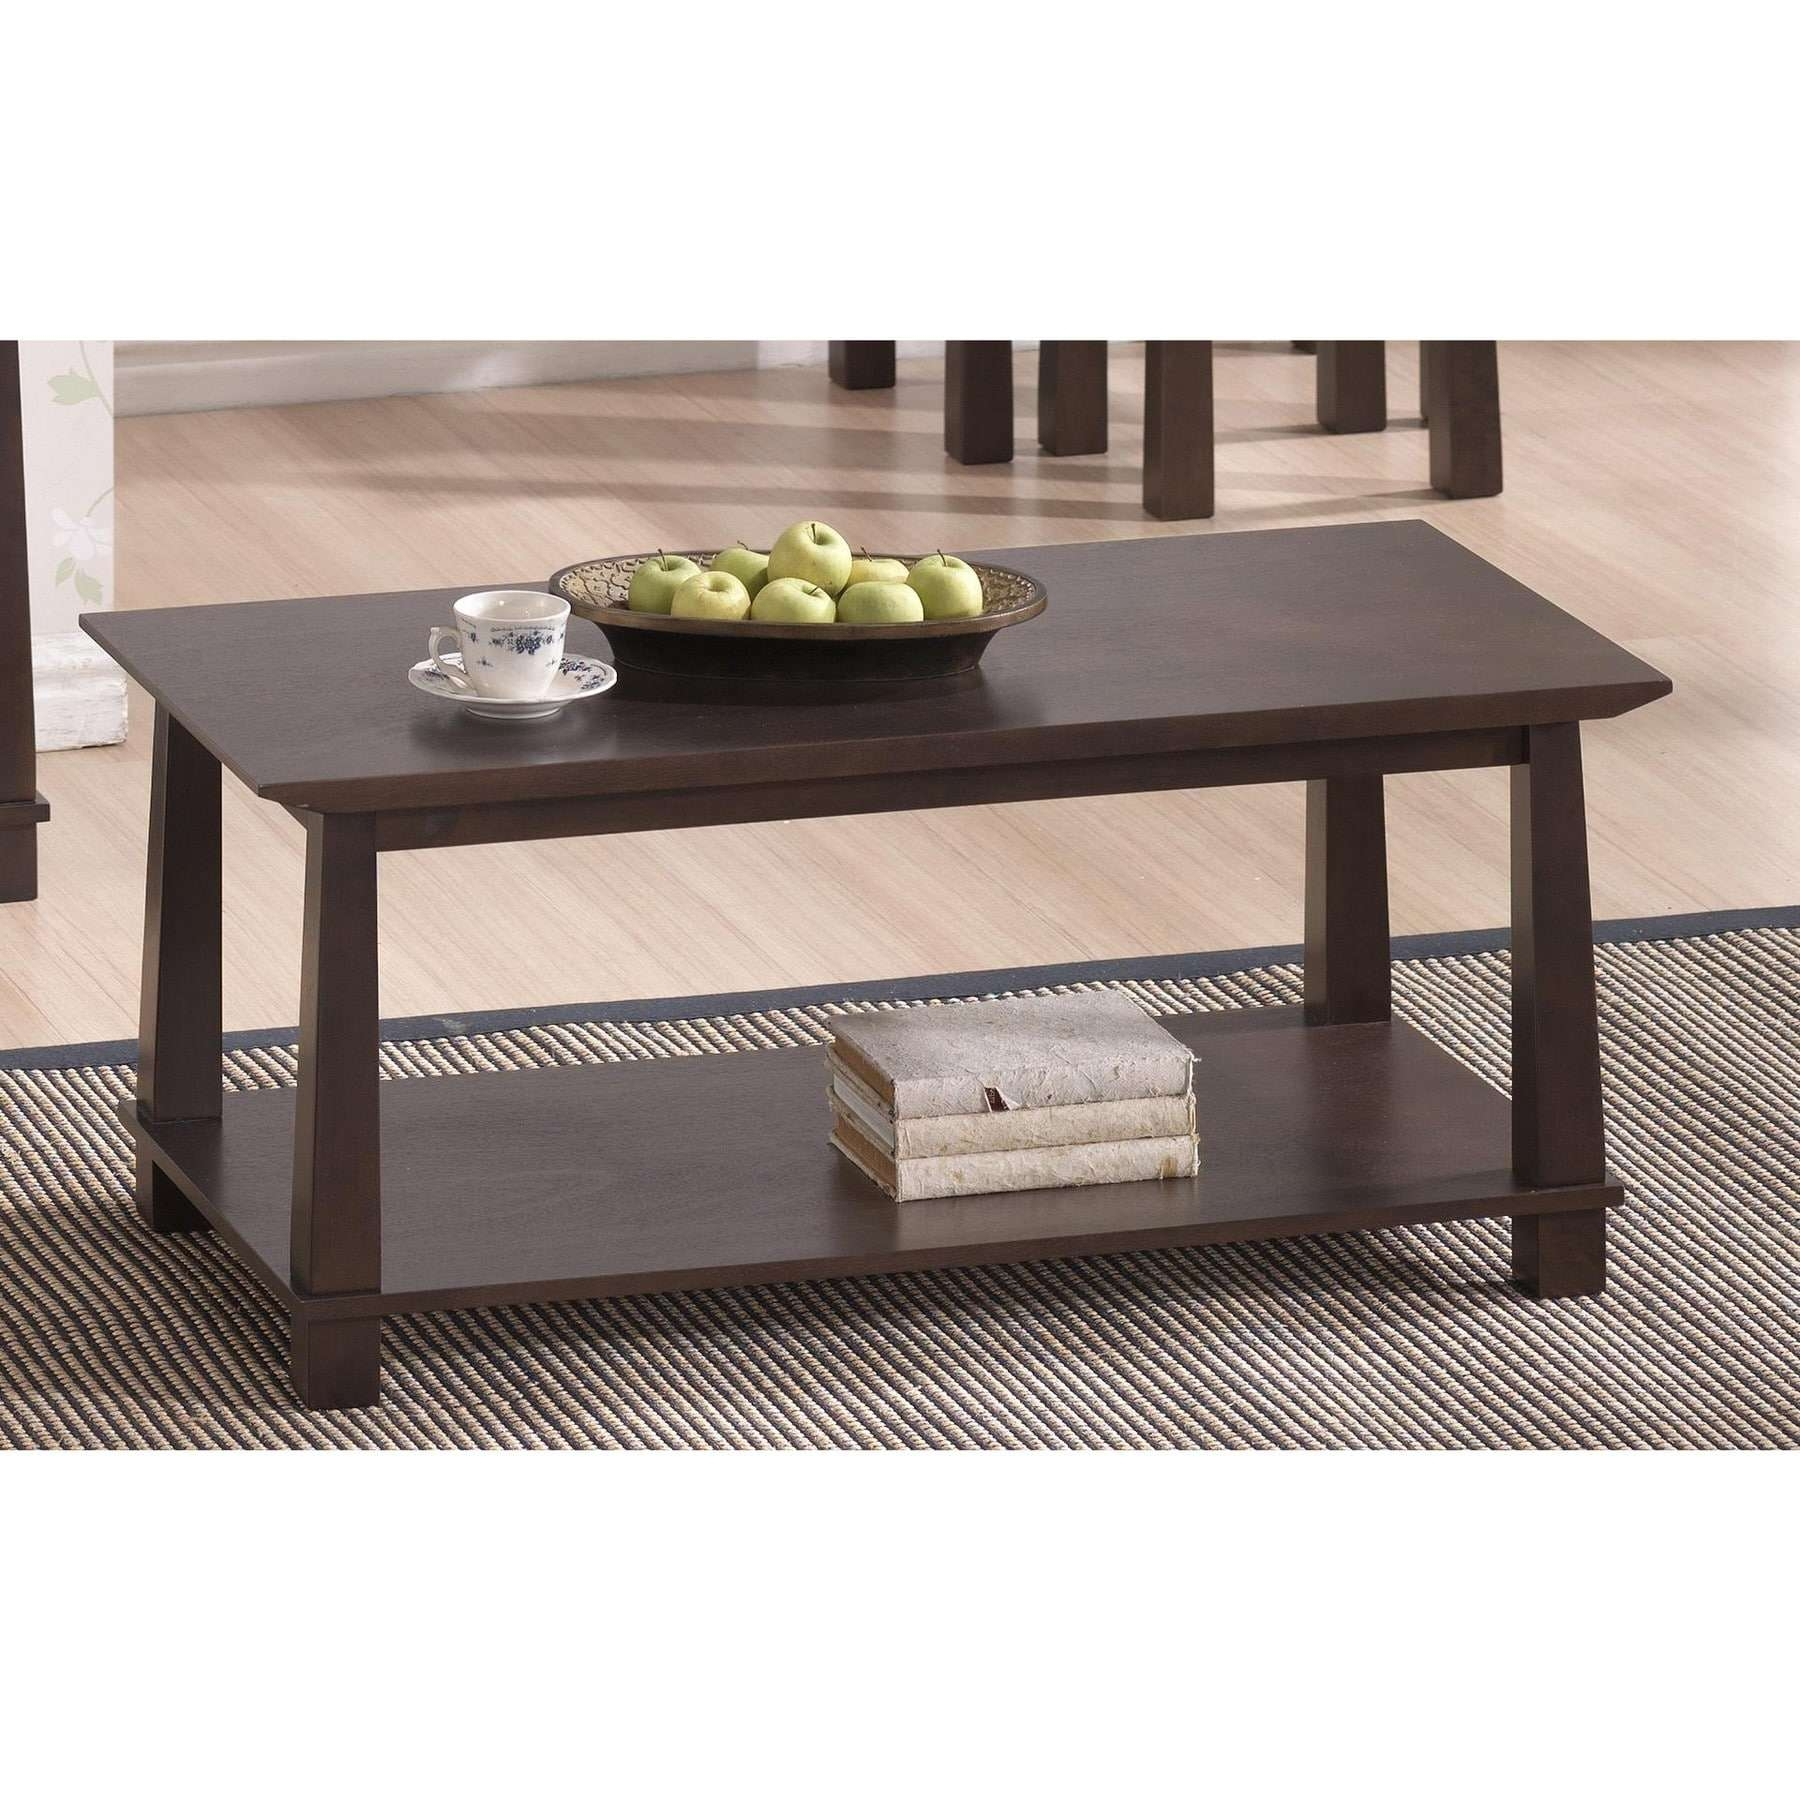 Latest Wood Modern Coffee Tables Throughout Havana Brown Wood Modern Coffee Table – Free Shipping Today (View 9 of 20)